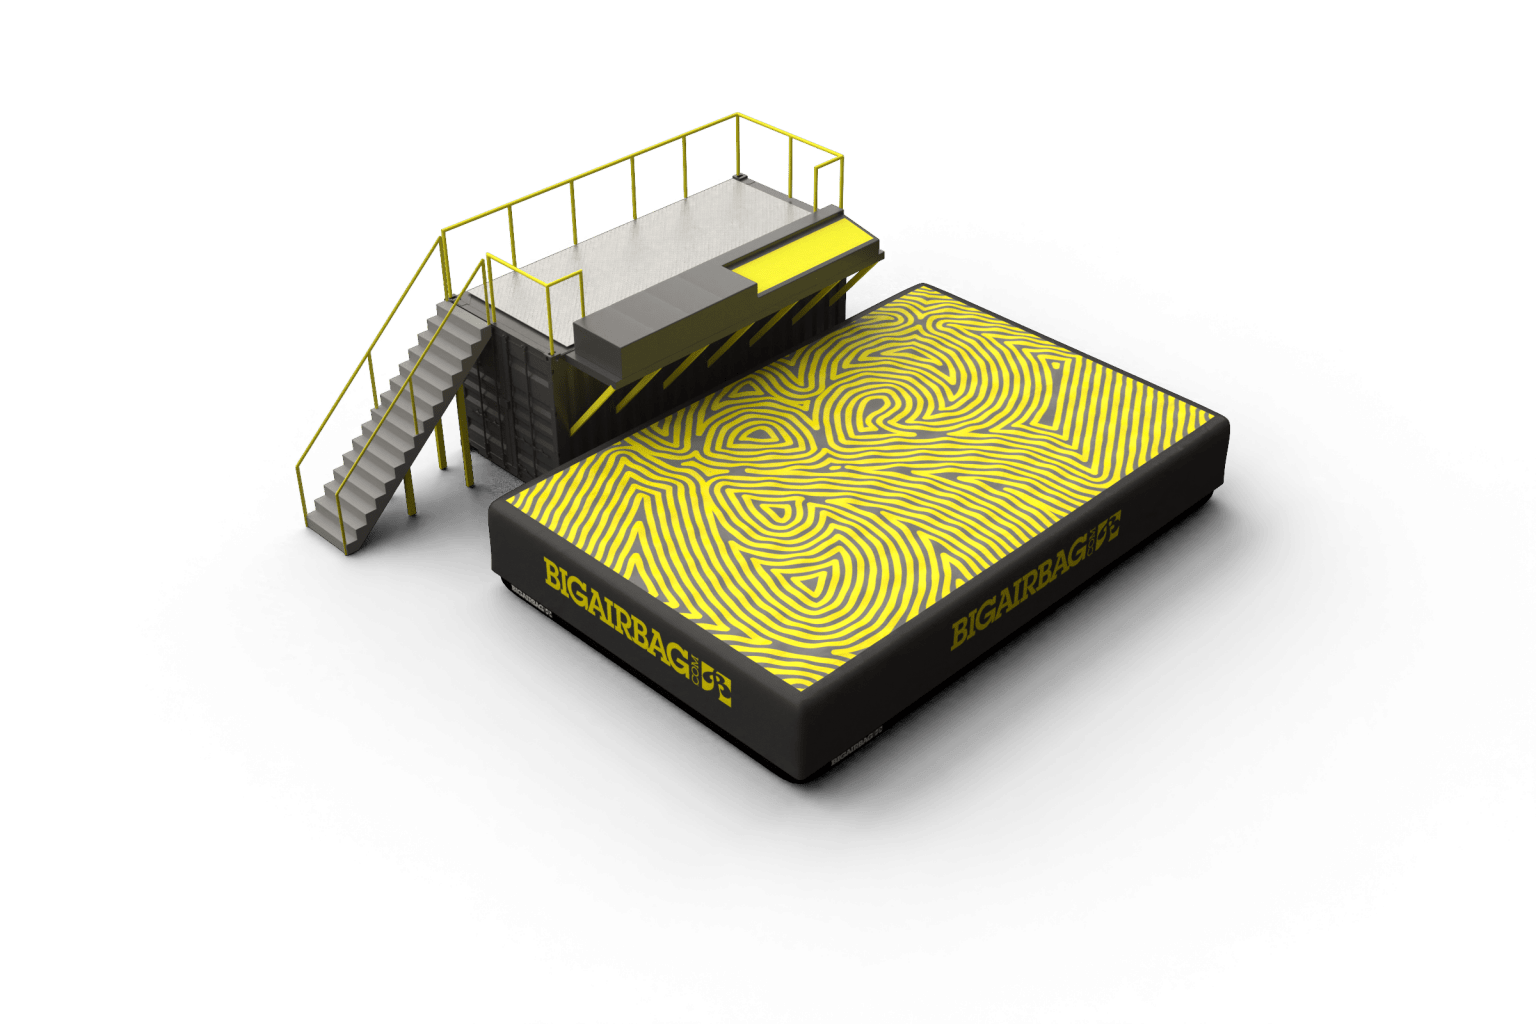 trampoline-station-3dmodel-attraction